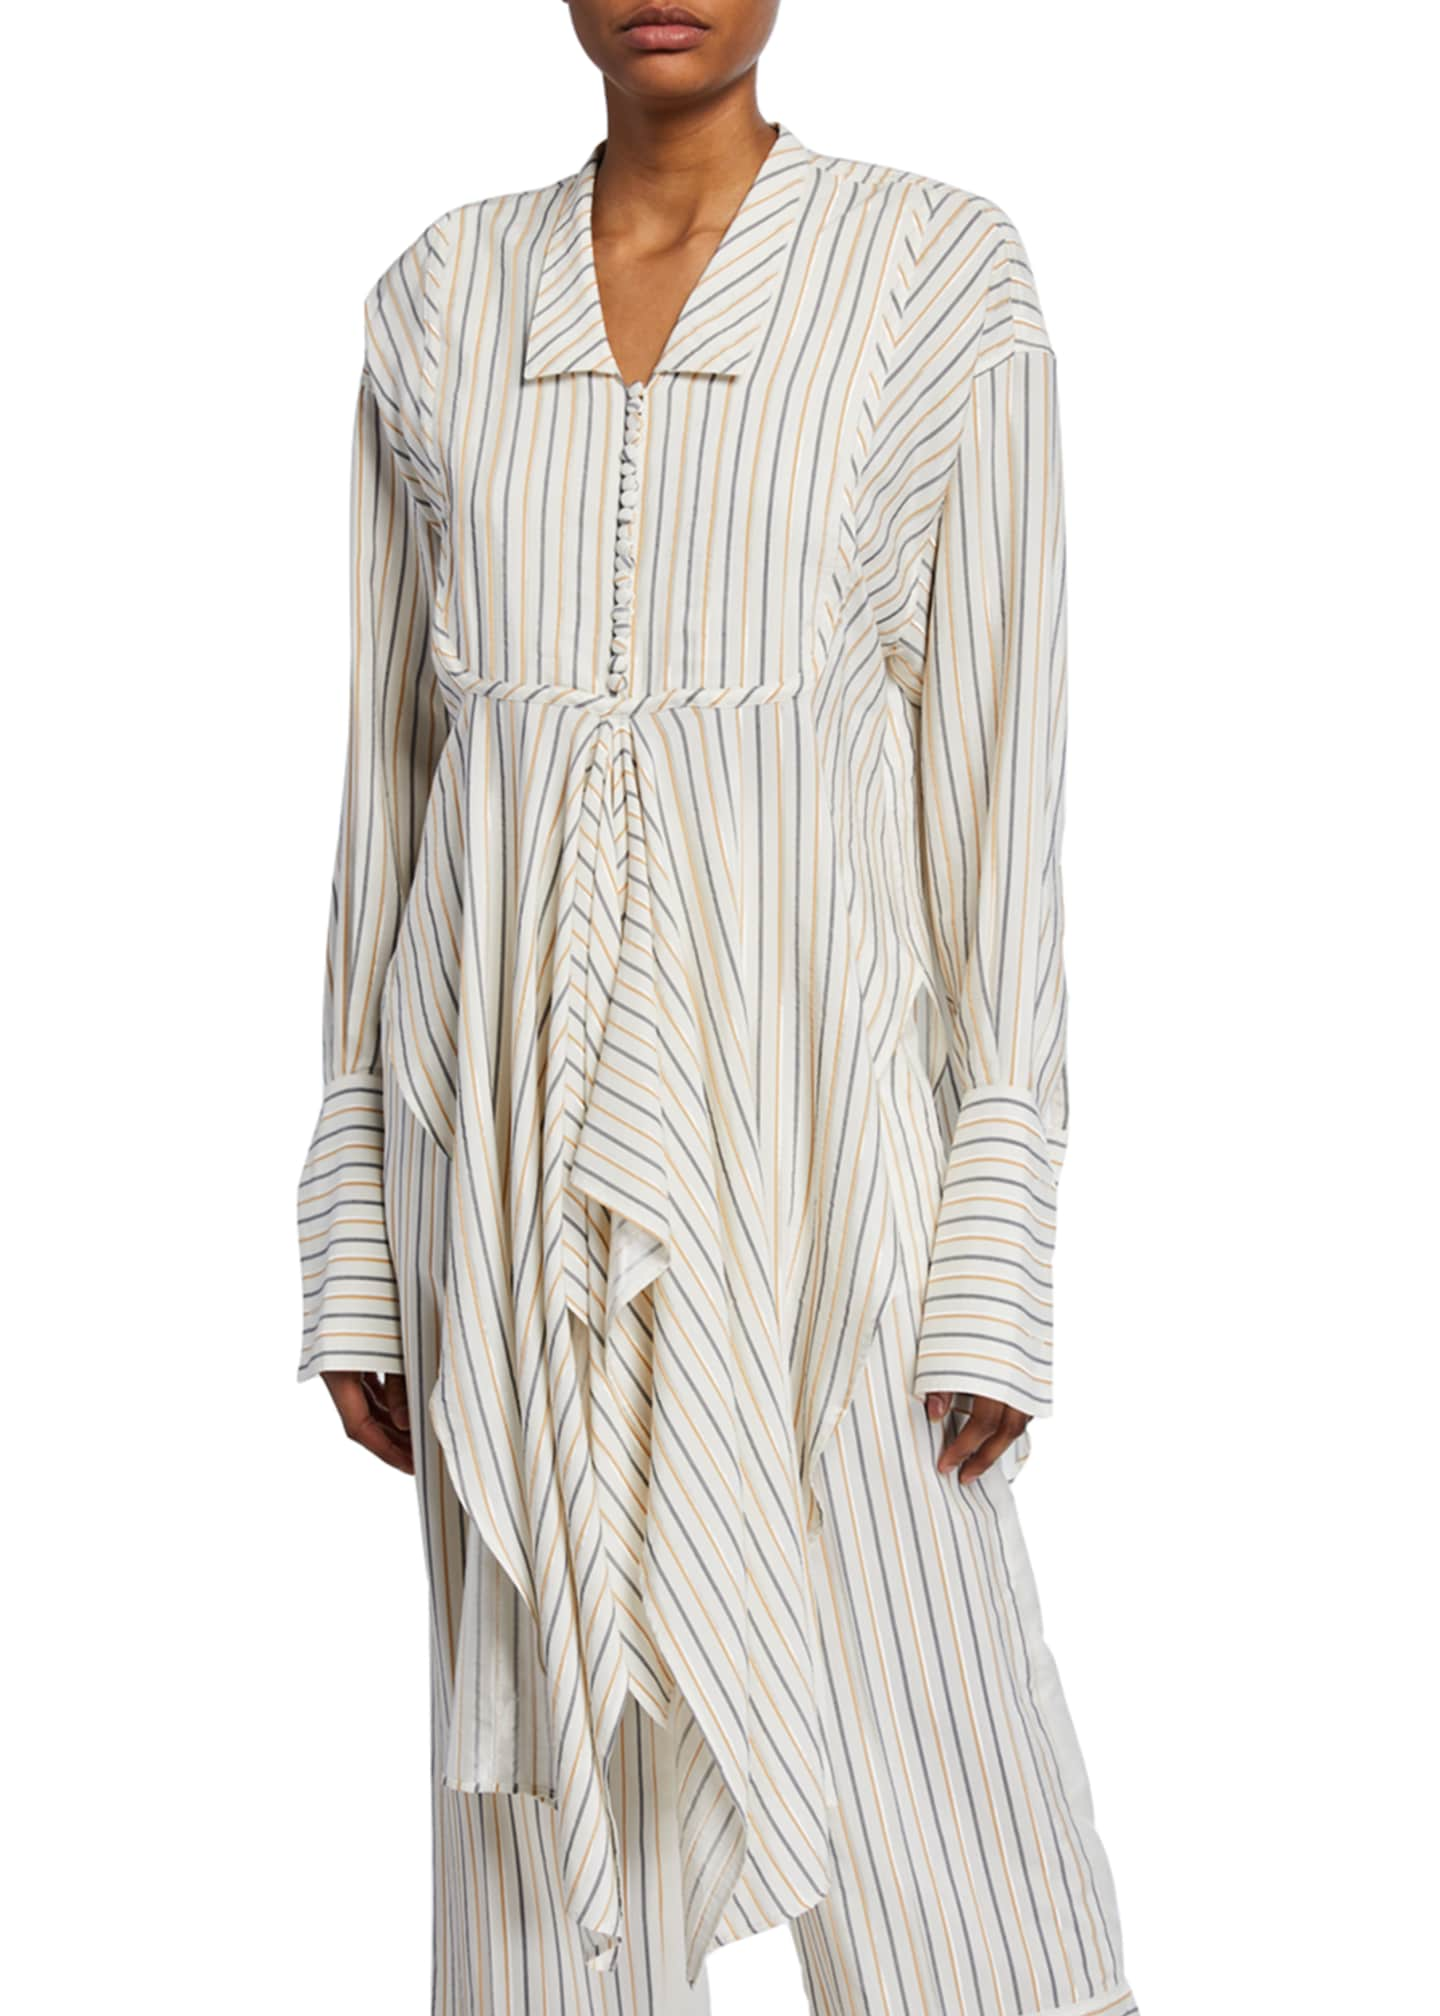 JW Anderson Striped Handkerchief Button-Front Shirt